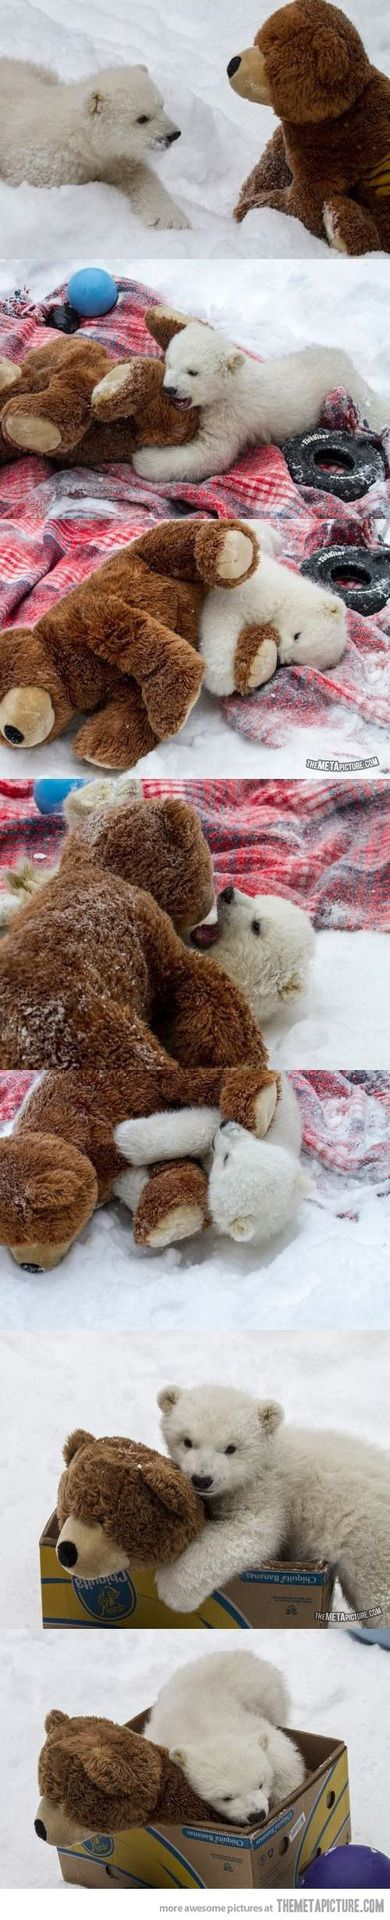 baby polar bear vs. Teddy bear